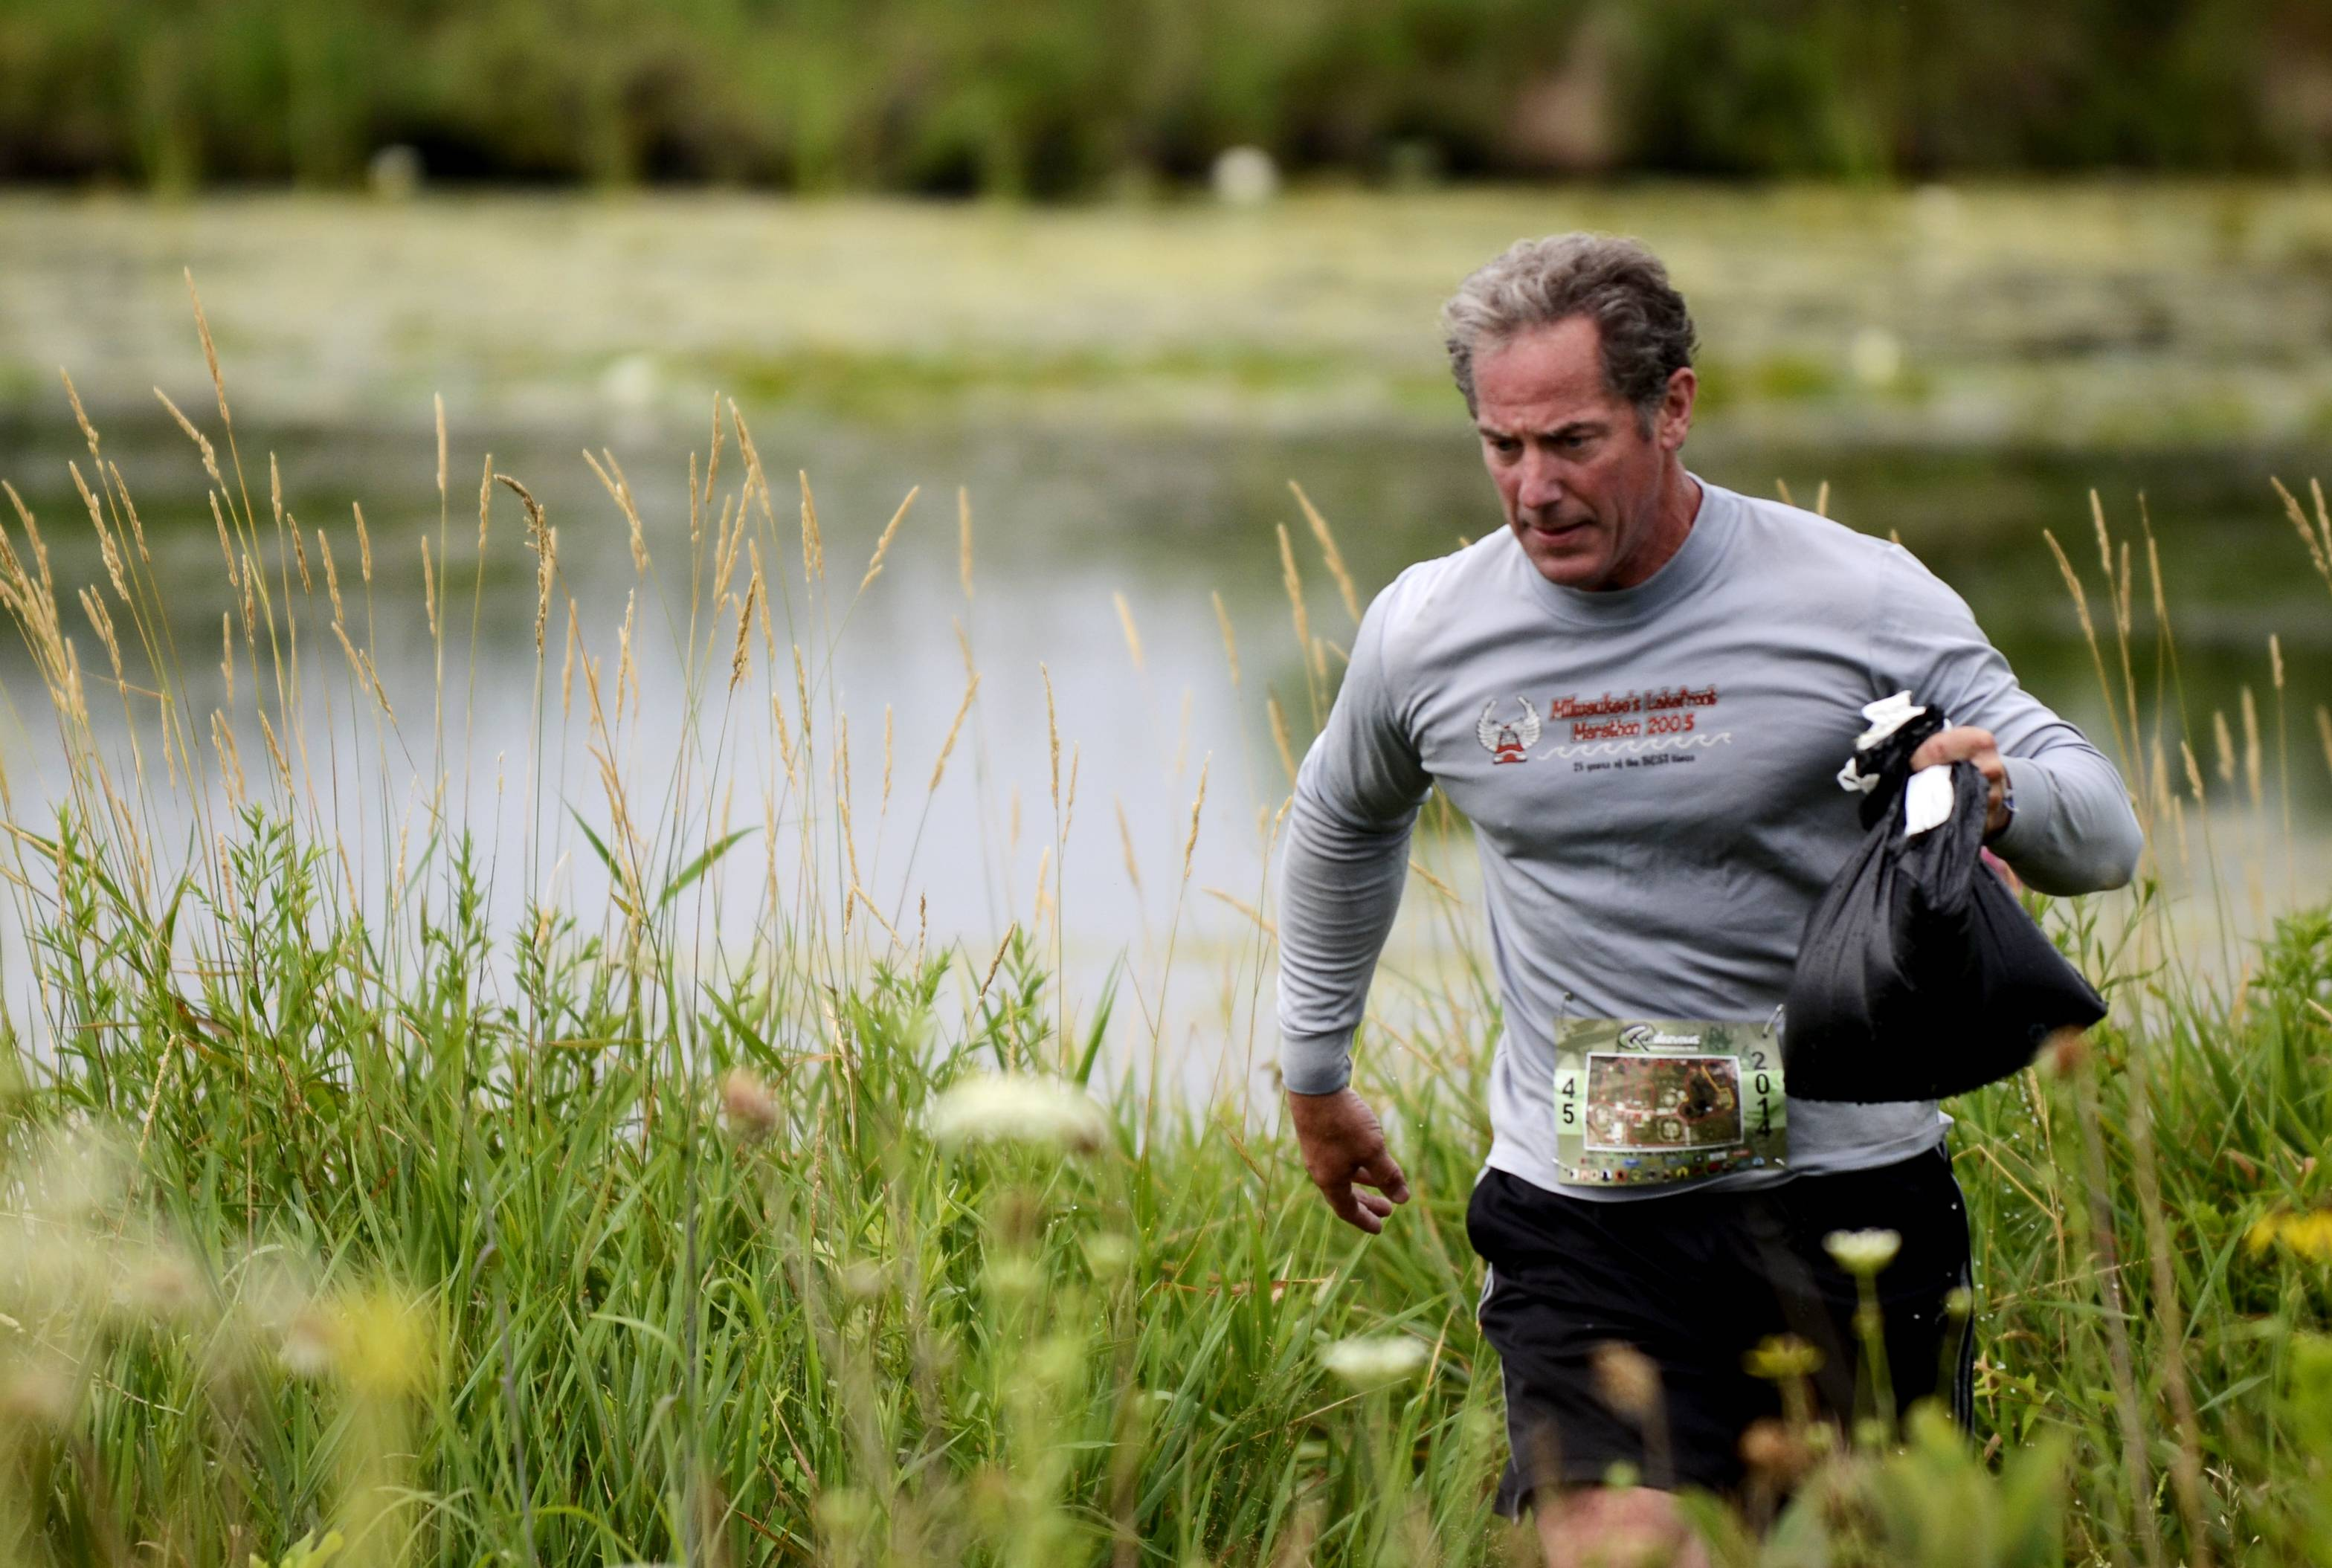 Chris Ivers of Crystal Lake carries a bag of water from the pond to fill a bucket at the RUNdezvous Saturday in Lippold Park in Crystal Lake. Racers must complete 14 skills, such as fire building, hatchet throwing, knot tying and water carrying, during the five-mile event.